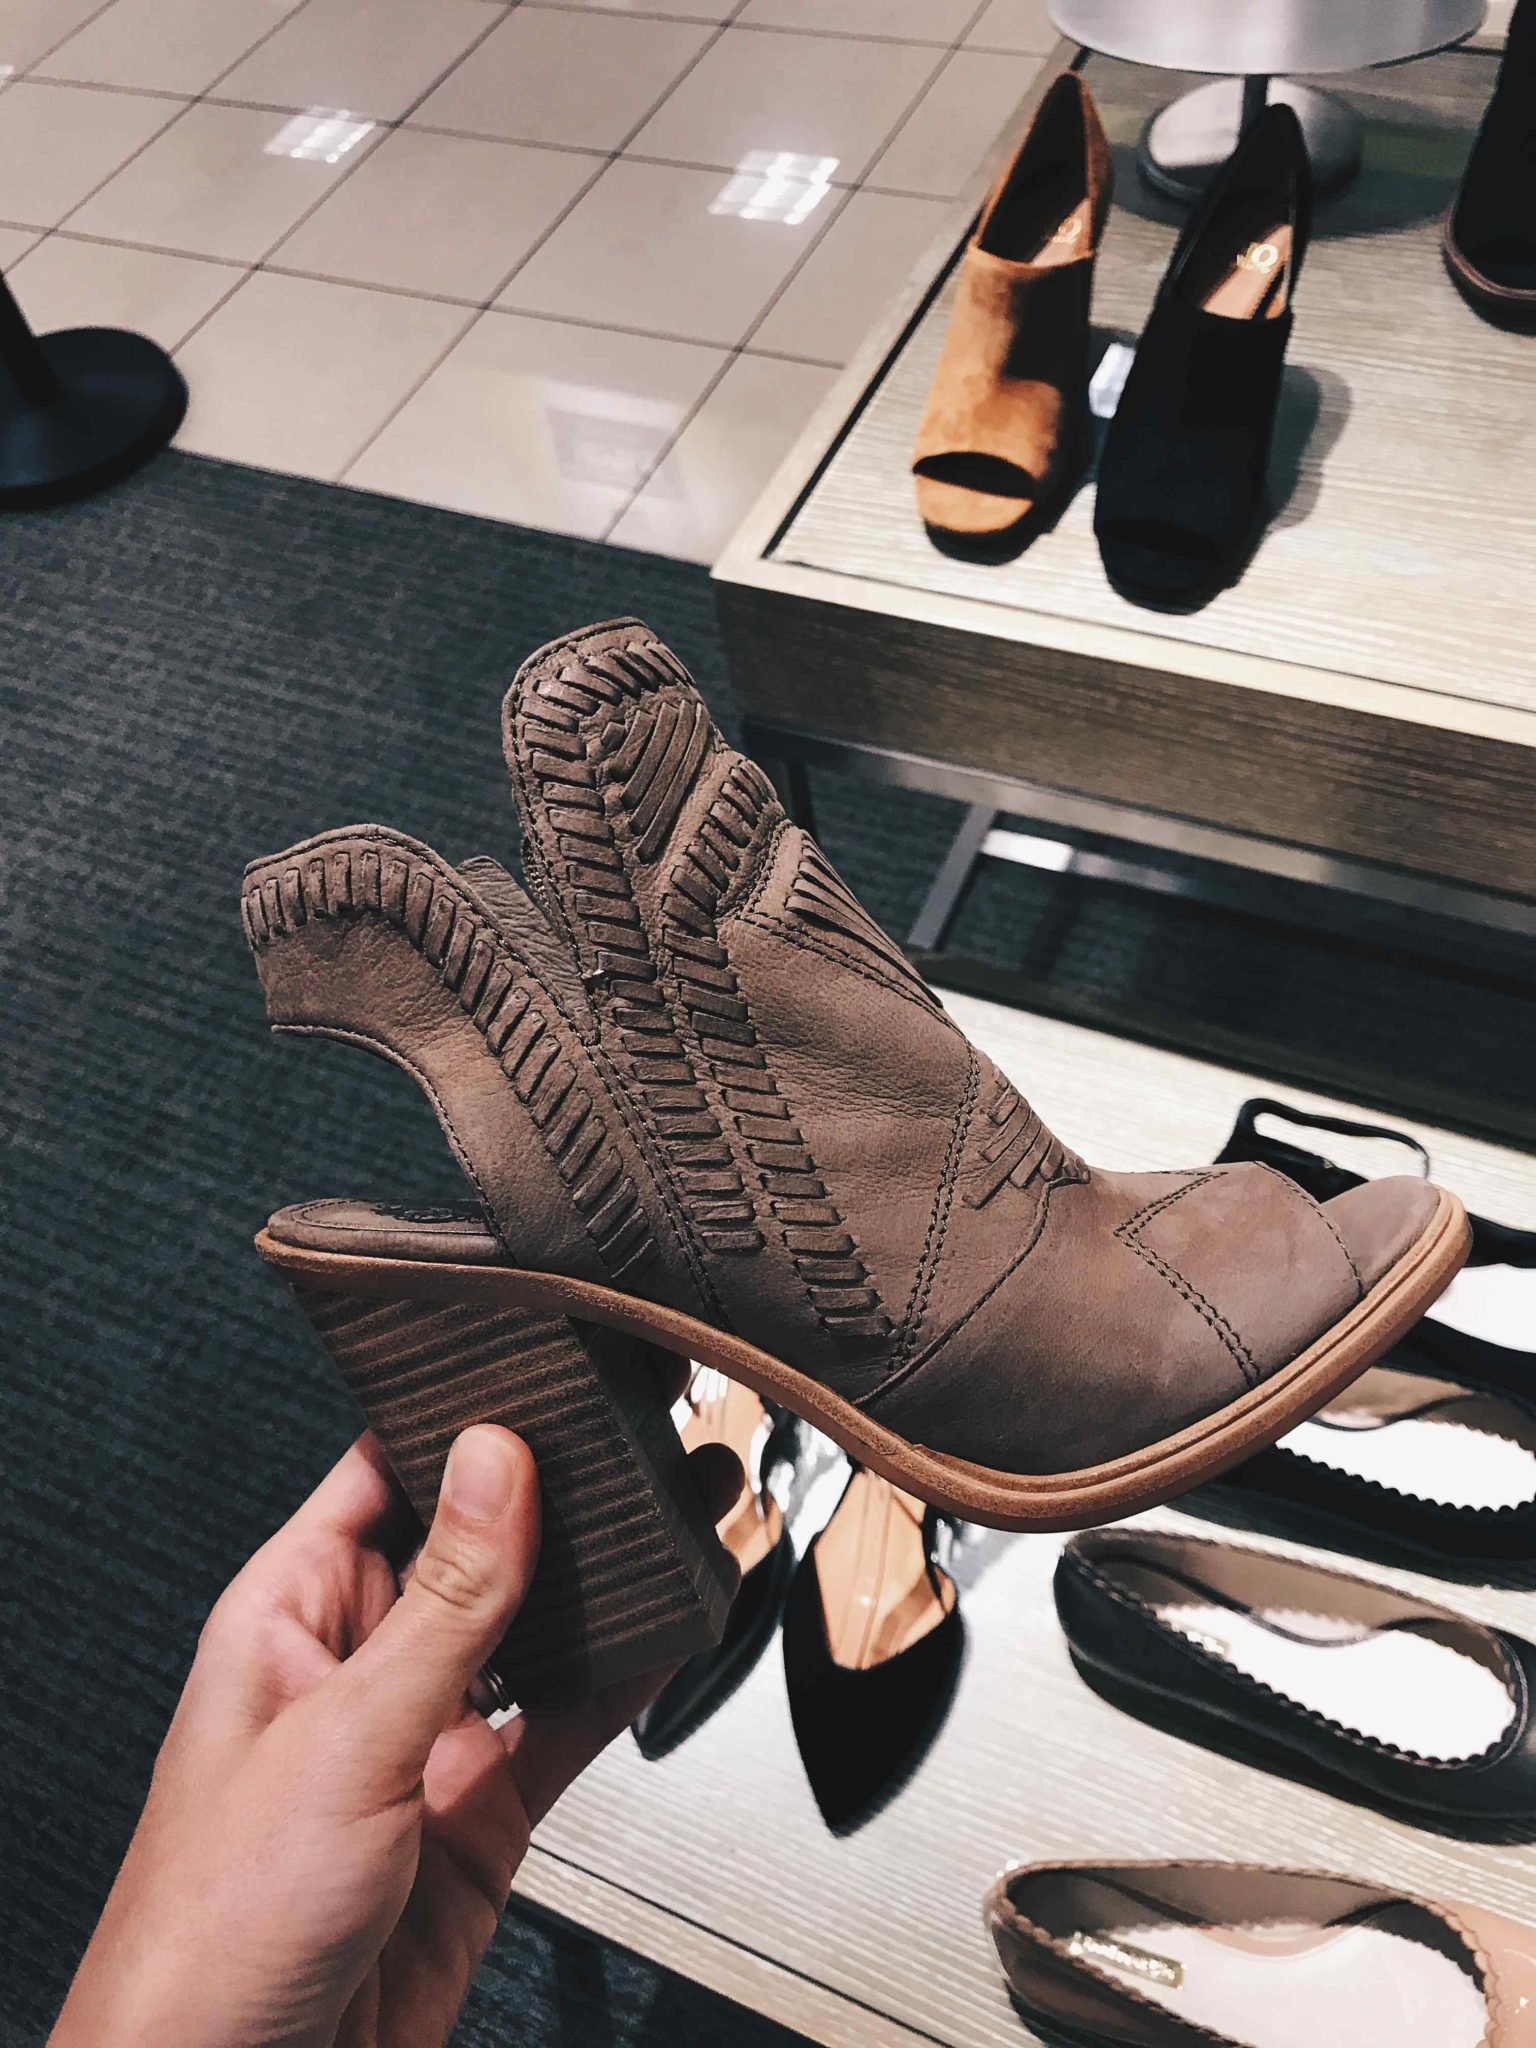 Austin Blogger DTKAustin has compiled a try-on guide of her top picks from the Nordstrom Anniversary Sale that are still in stock!